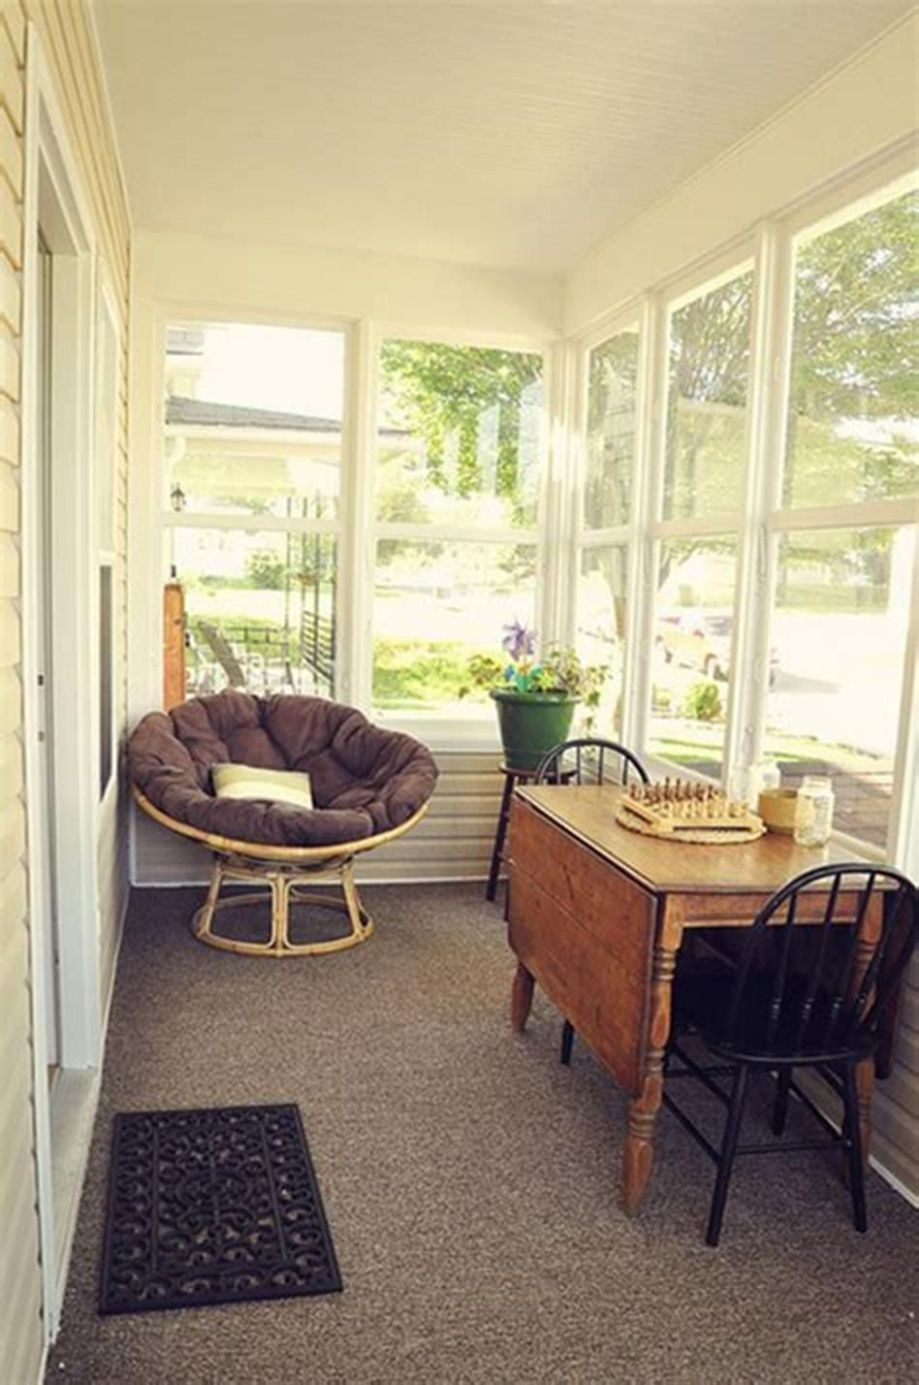 12 Cozy Sunroom Decorating Ideas On a Budget | Sunroom decorating ..